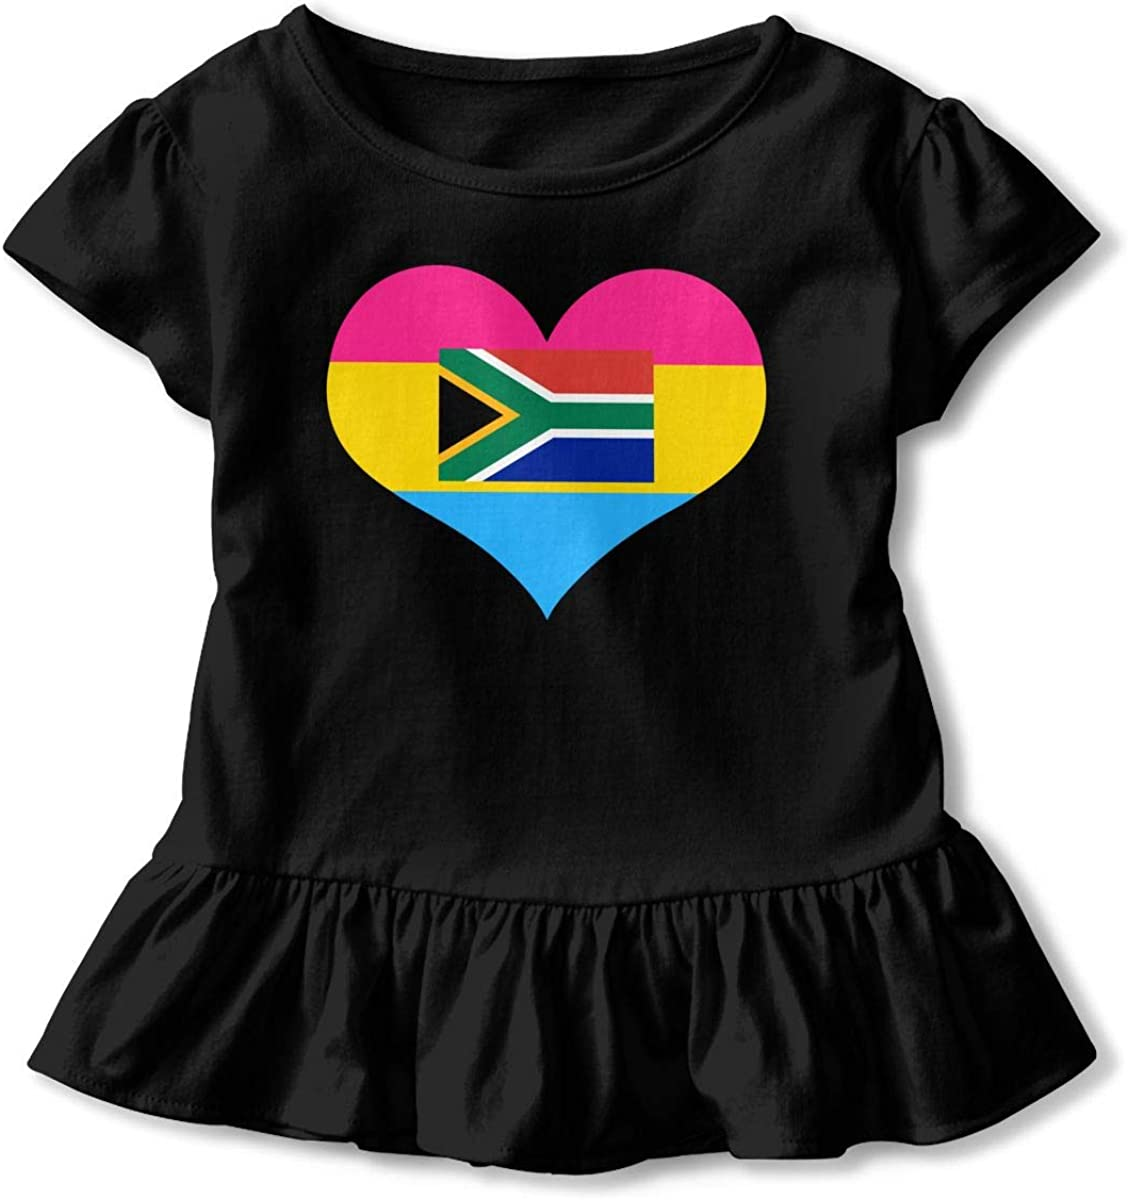 GNKTGBO2O Baby Girls Pansexual Heart South African Flag 100/% Cotton T Shirts Short Sleeve Ruffle Tee Basic Tops